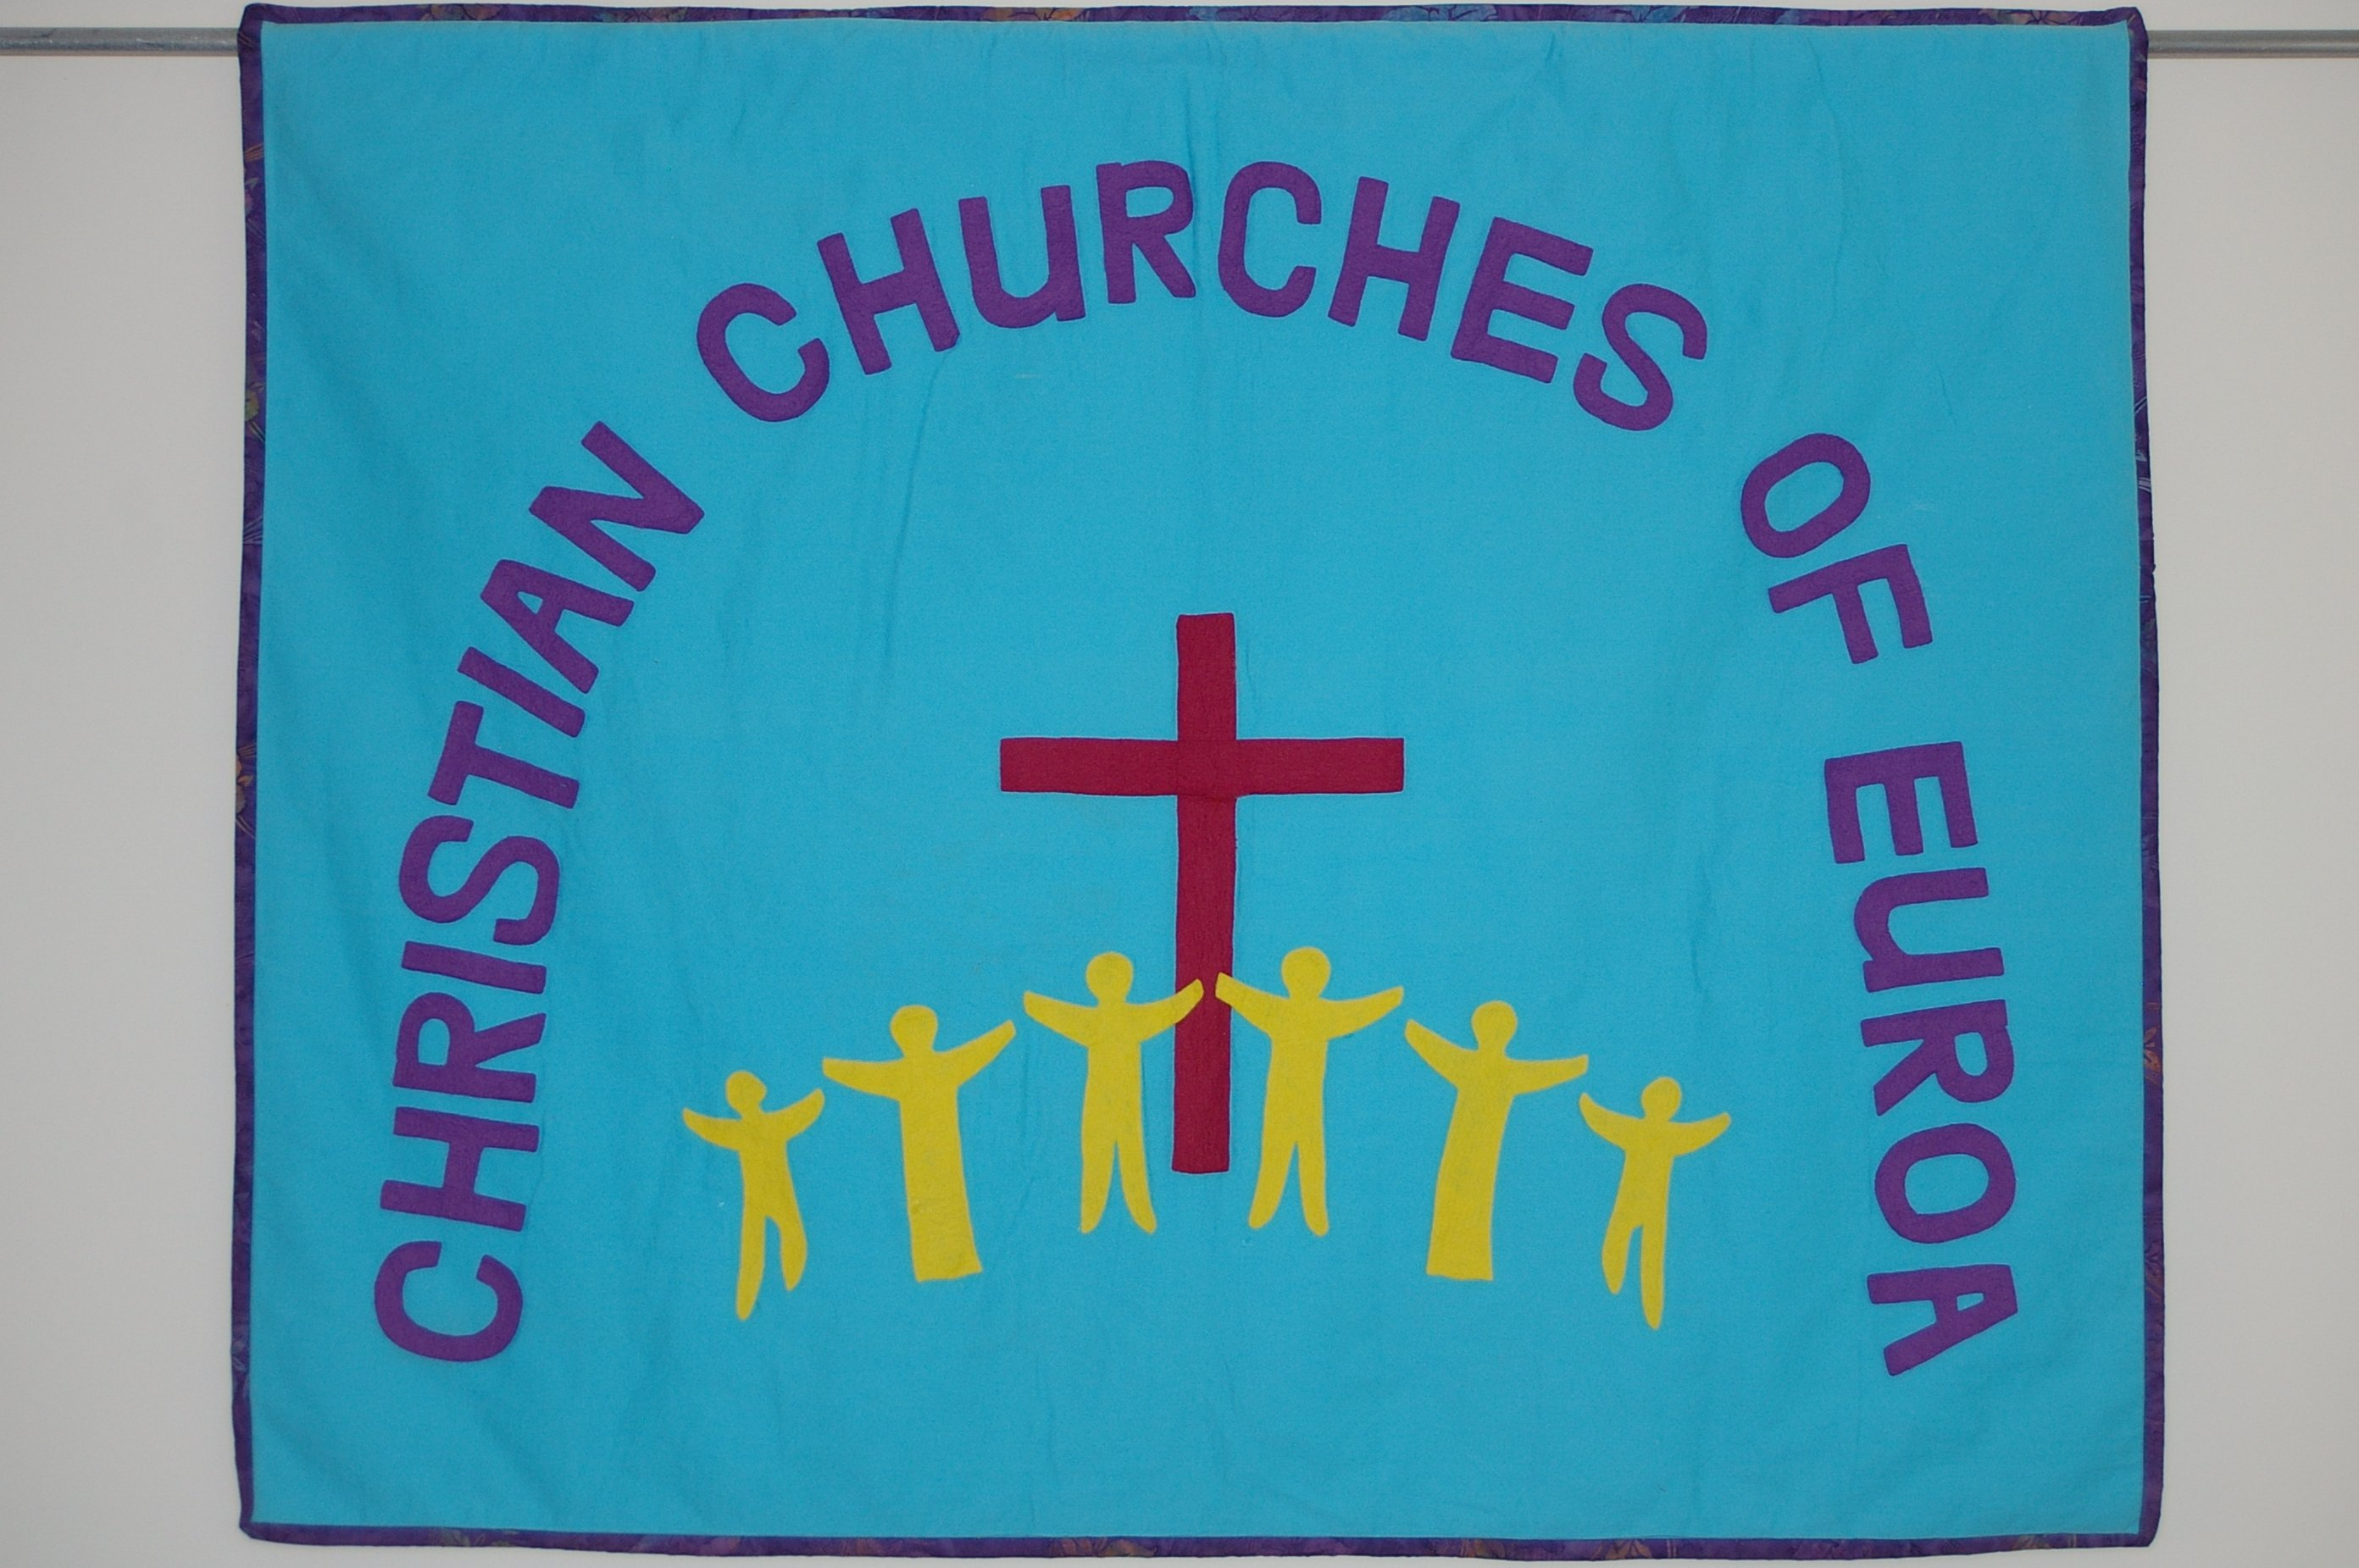 Christian Churches of Euroa